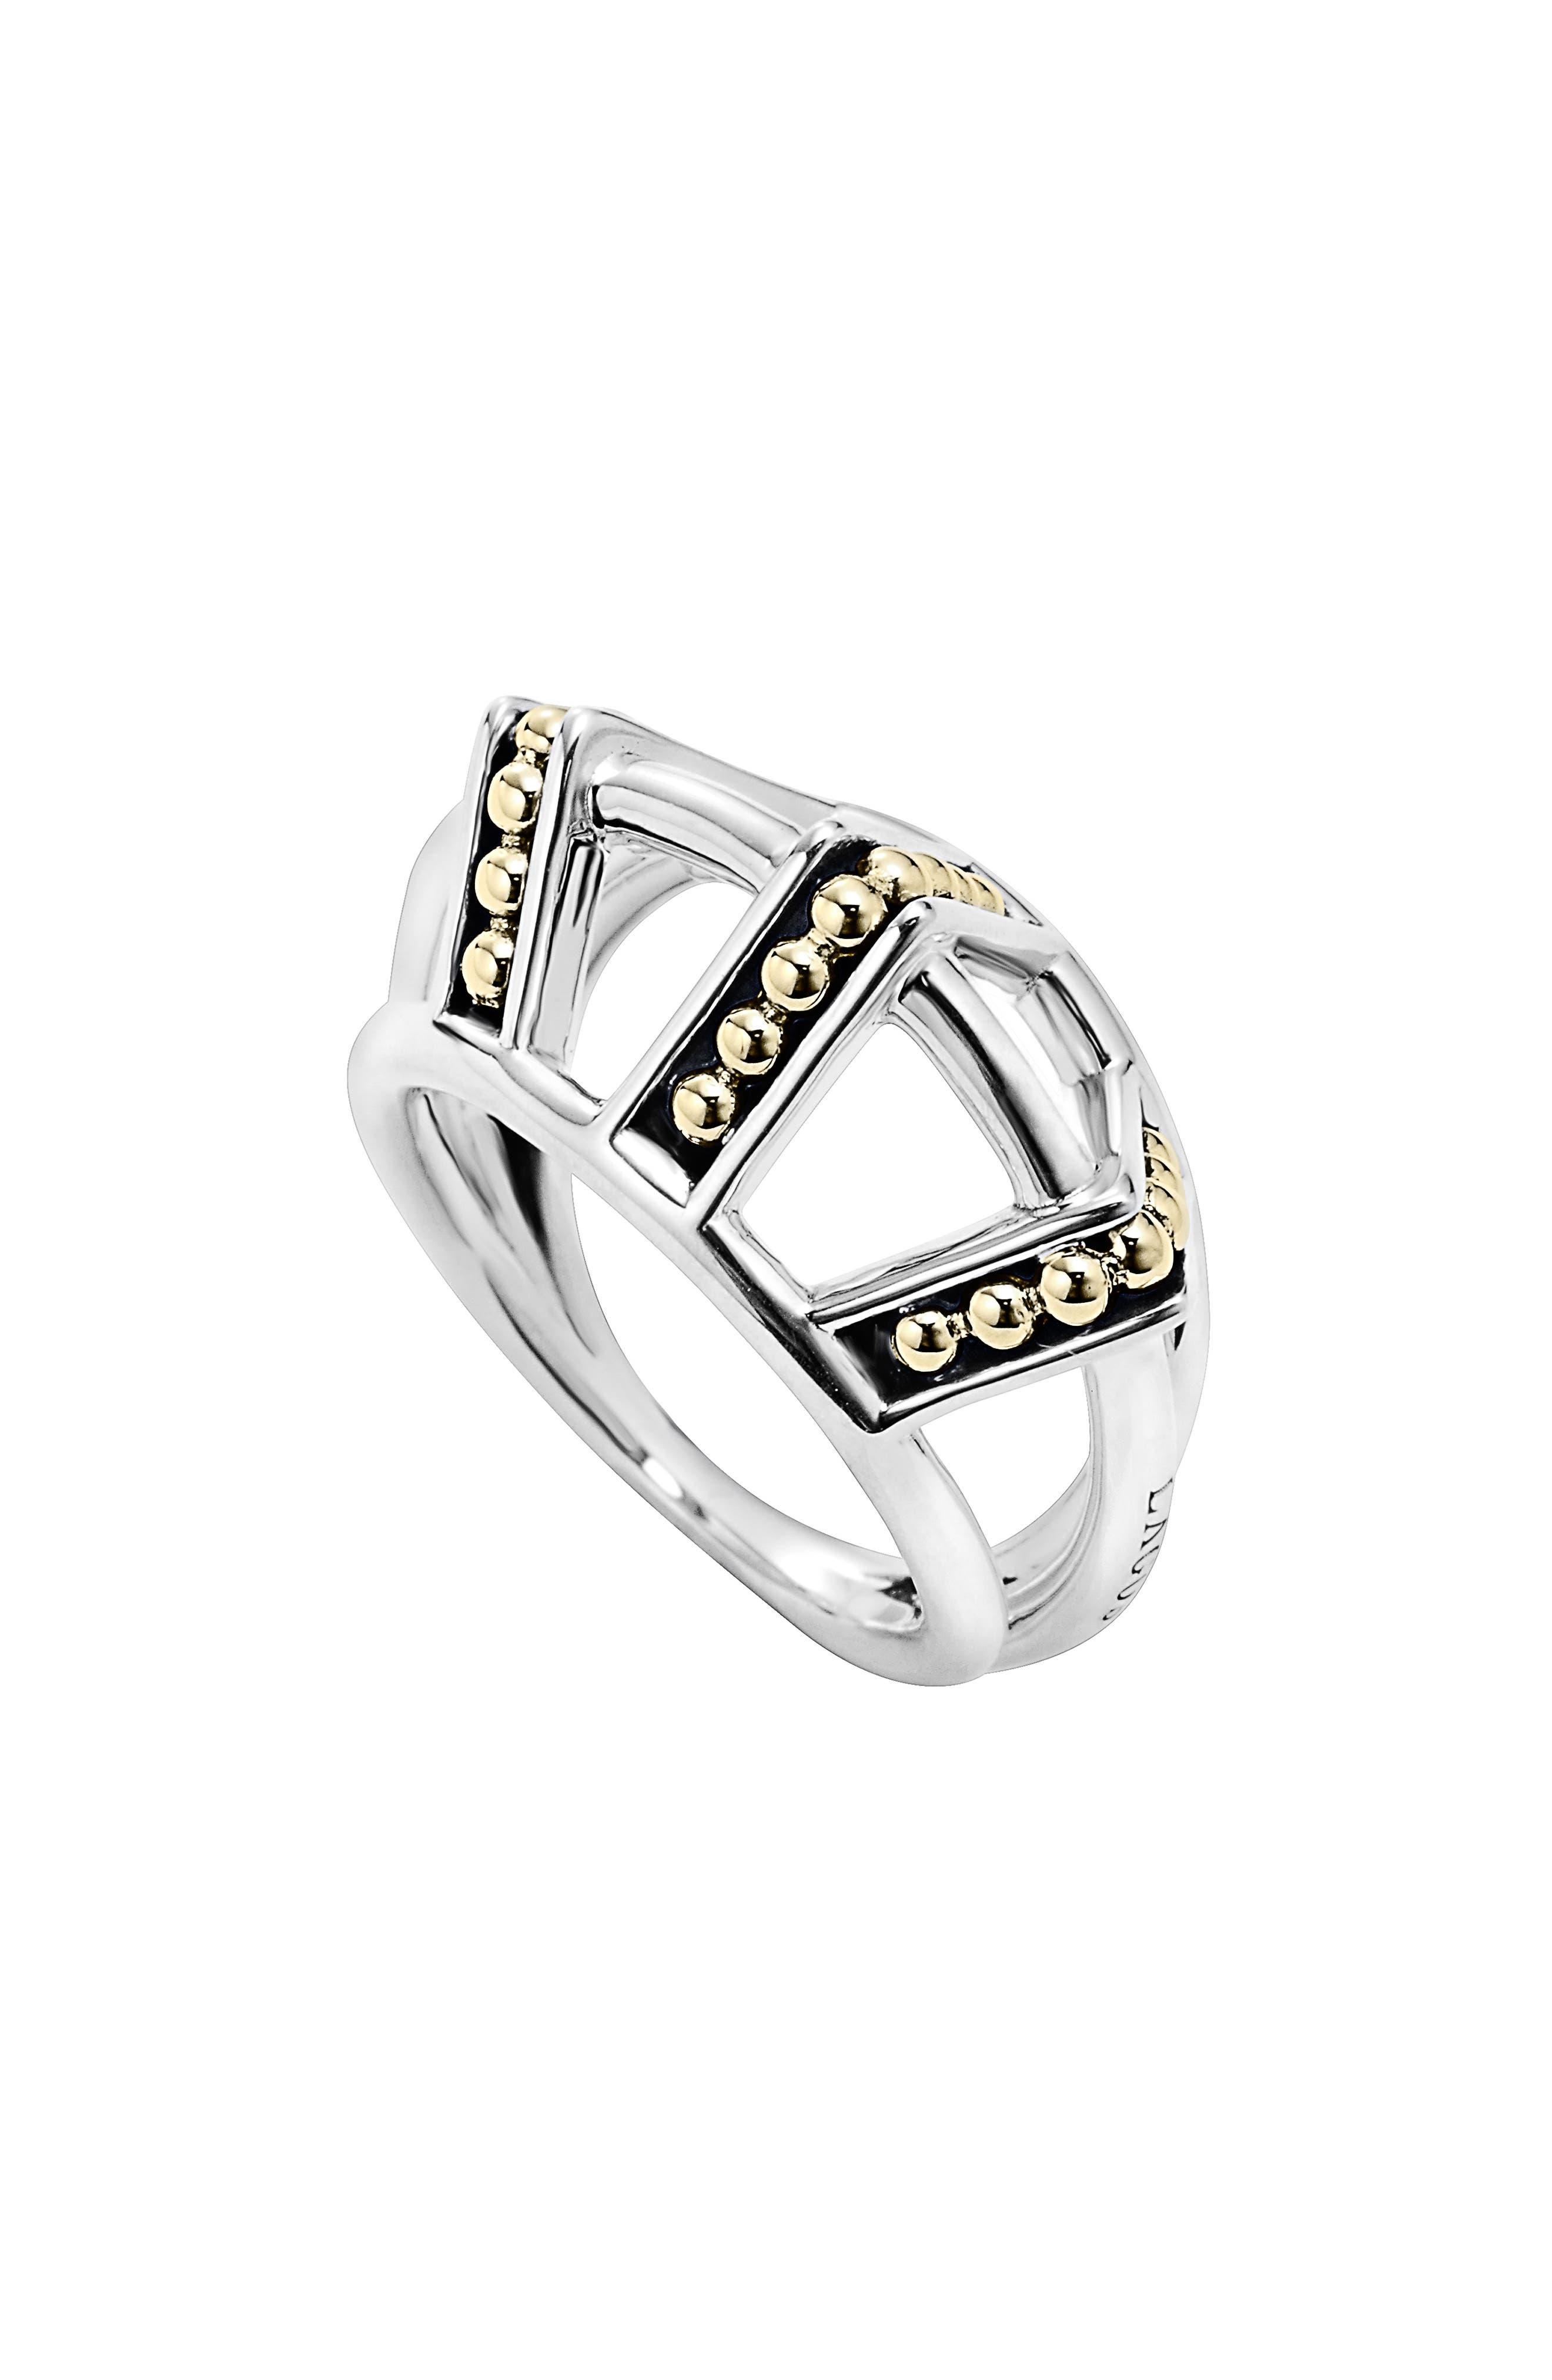 'KSL' Pyramid Ring,                             Alternate thumbnail 2, color,                             SILVER/ GOLD